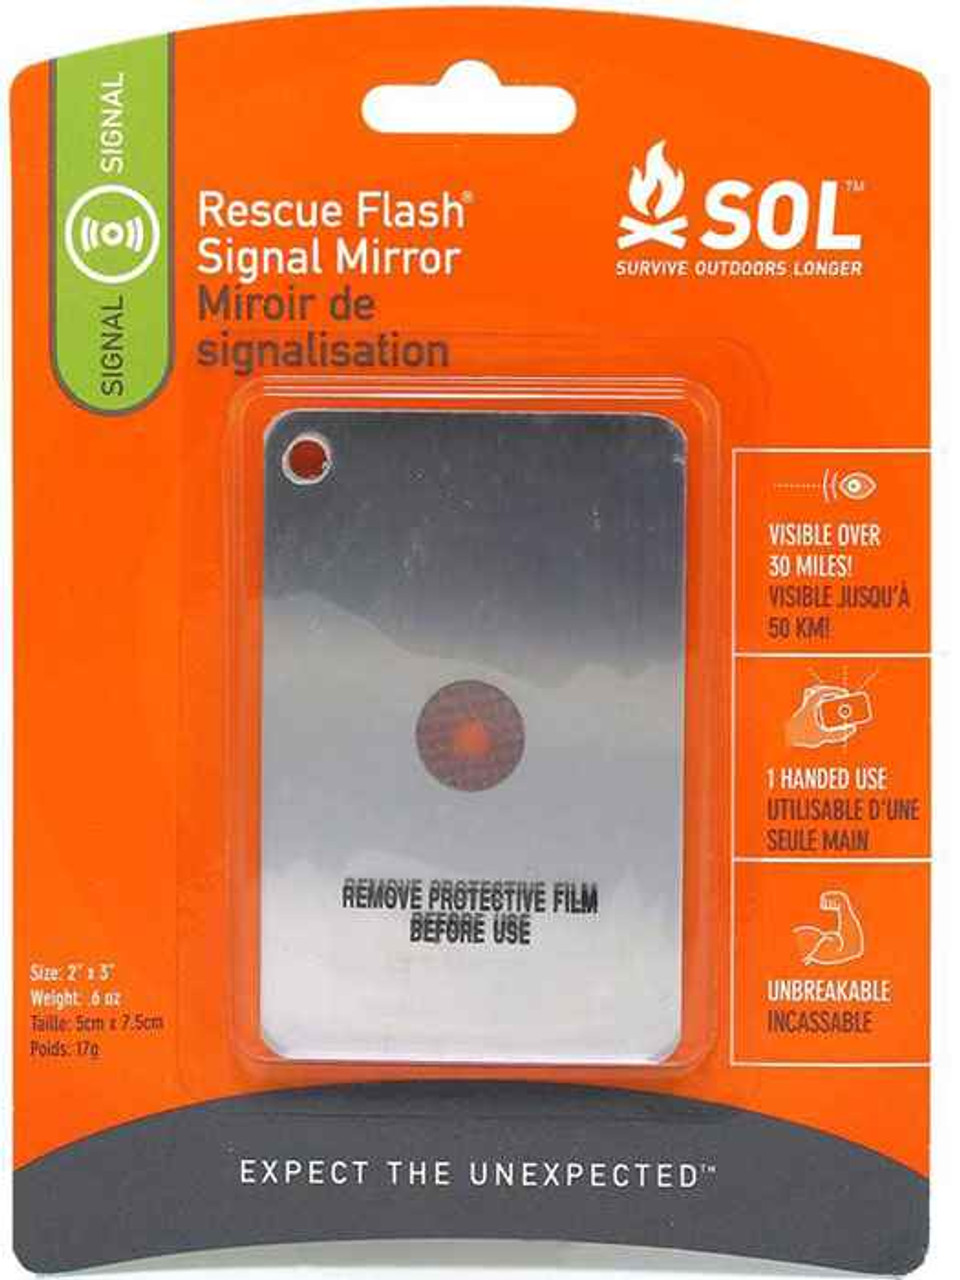 Adventure AD0140-1003 Medical Kits Rescue Flash Signal Mirror